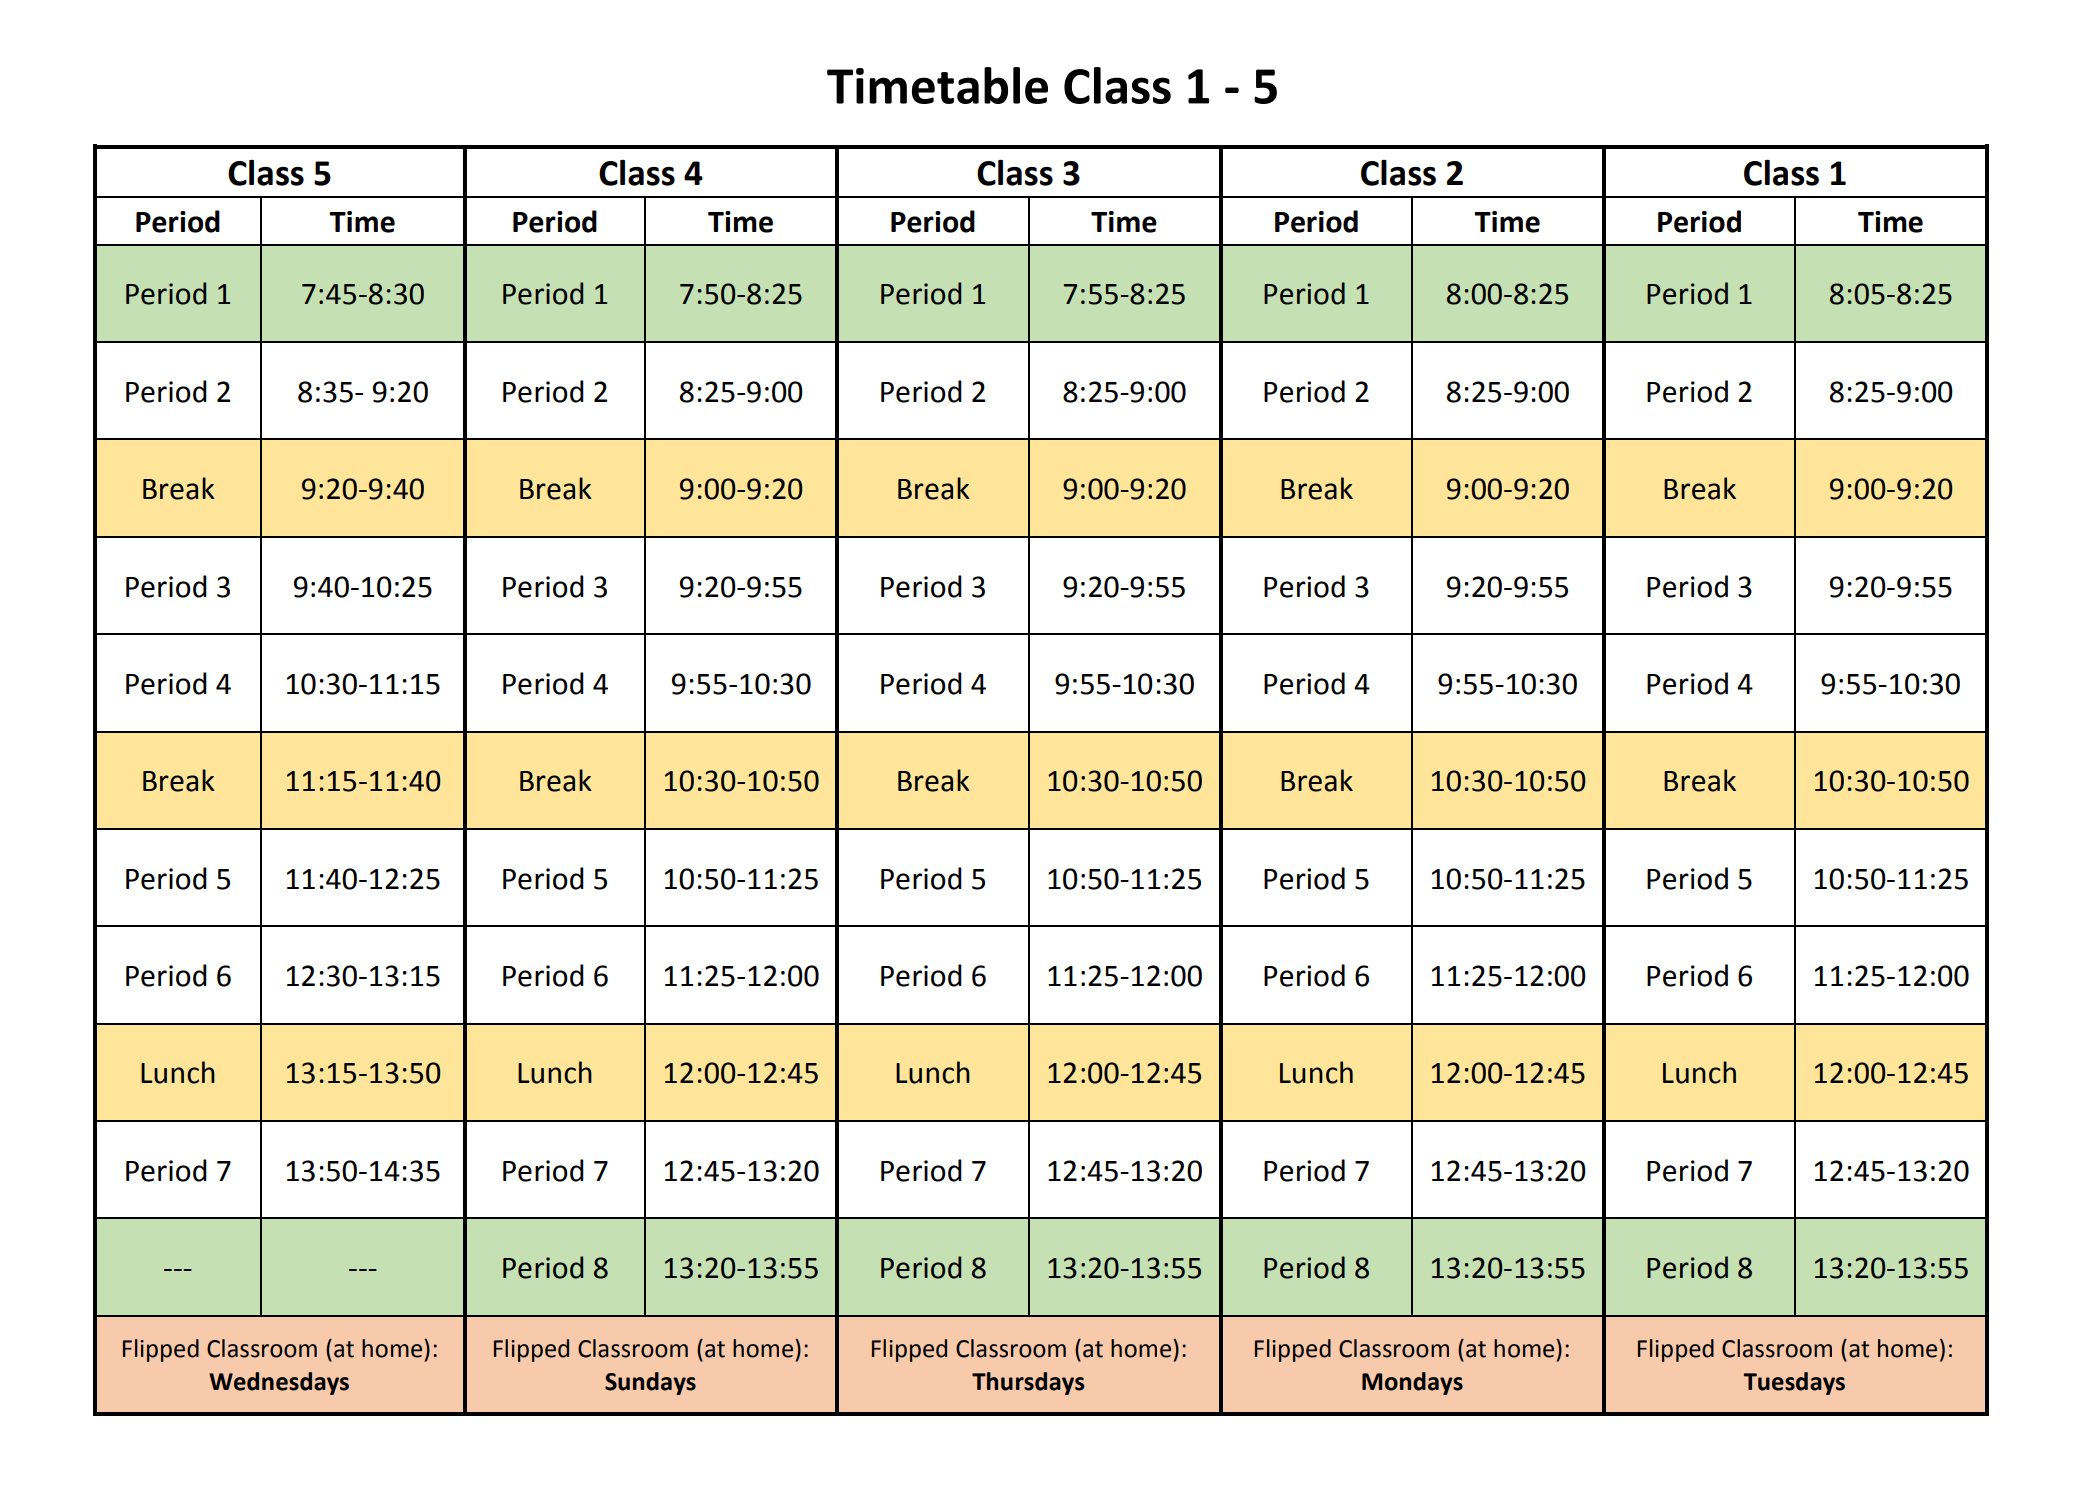 Timetable Class 1 5 10.09.2020